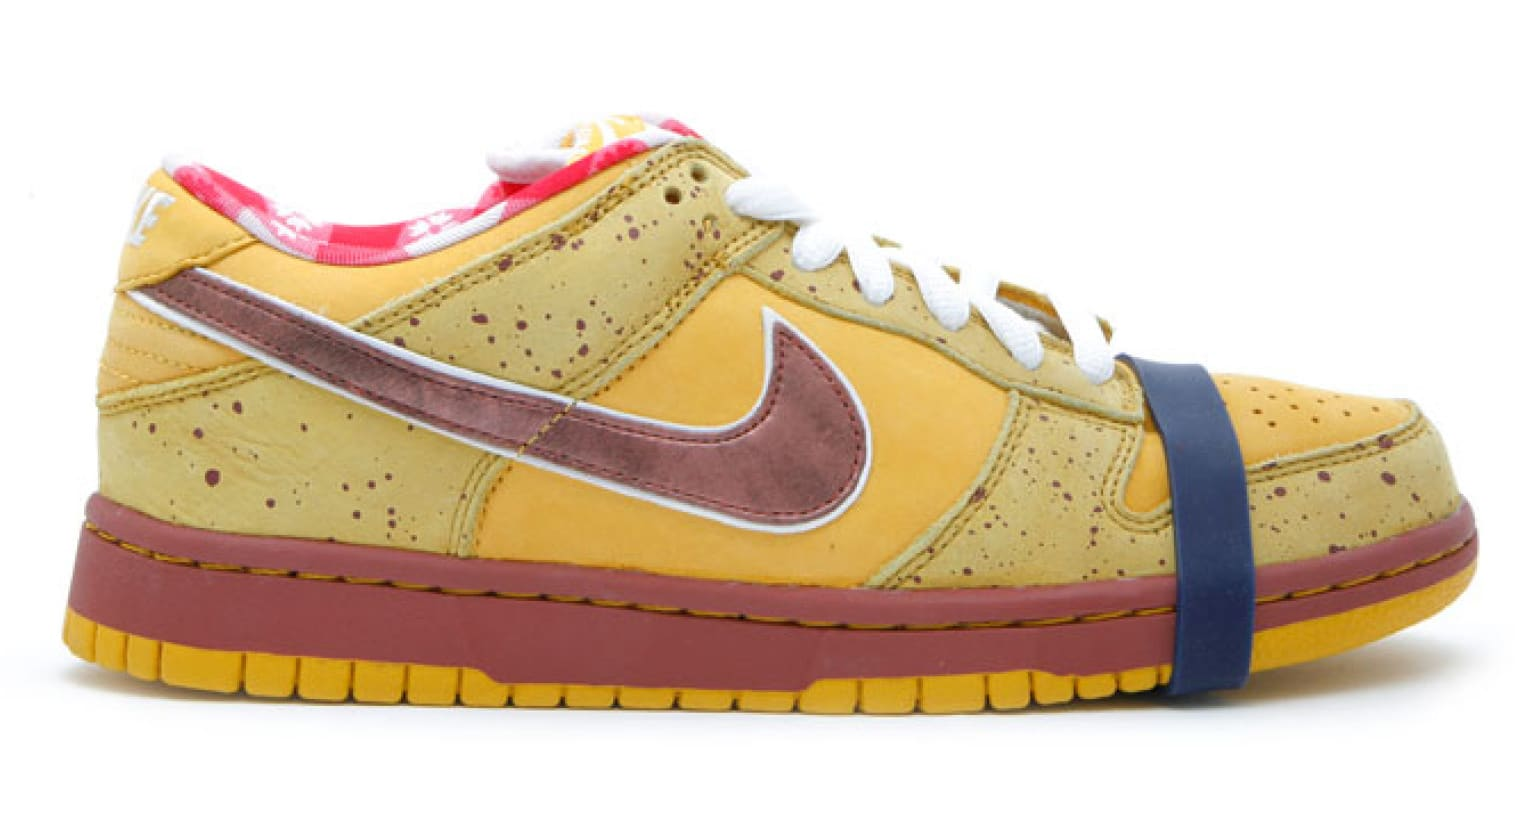 Nike SB Dunk Low Yellow Lobster